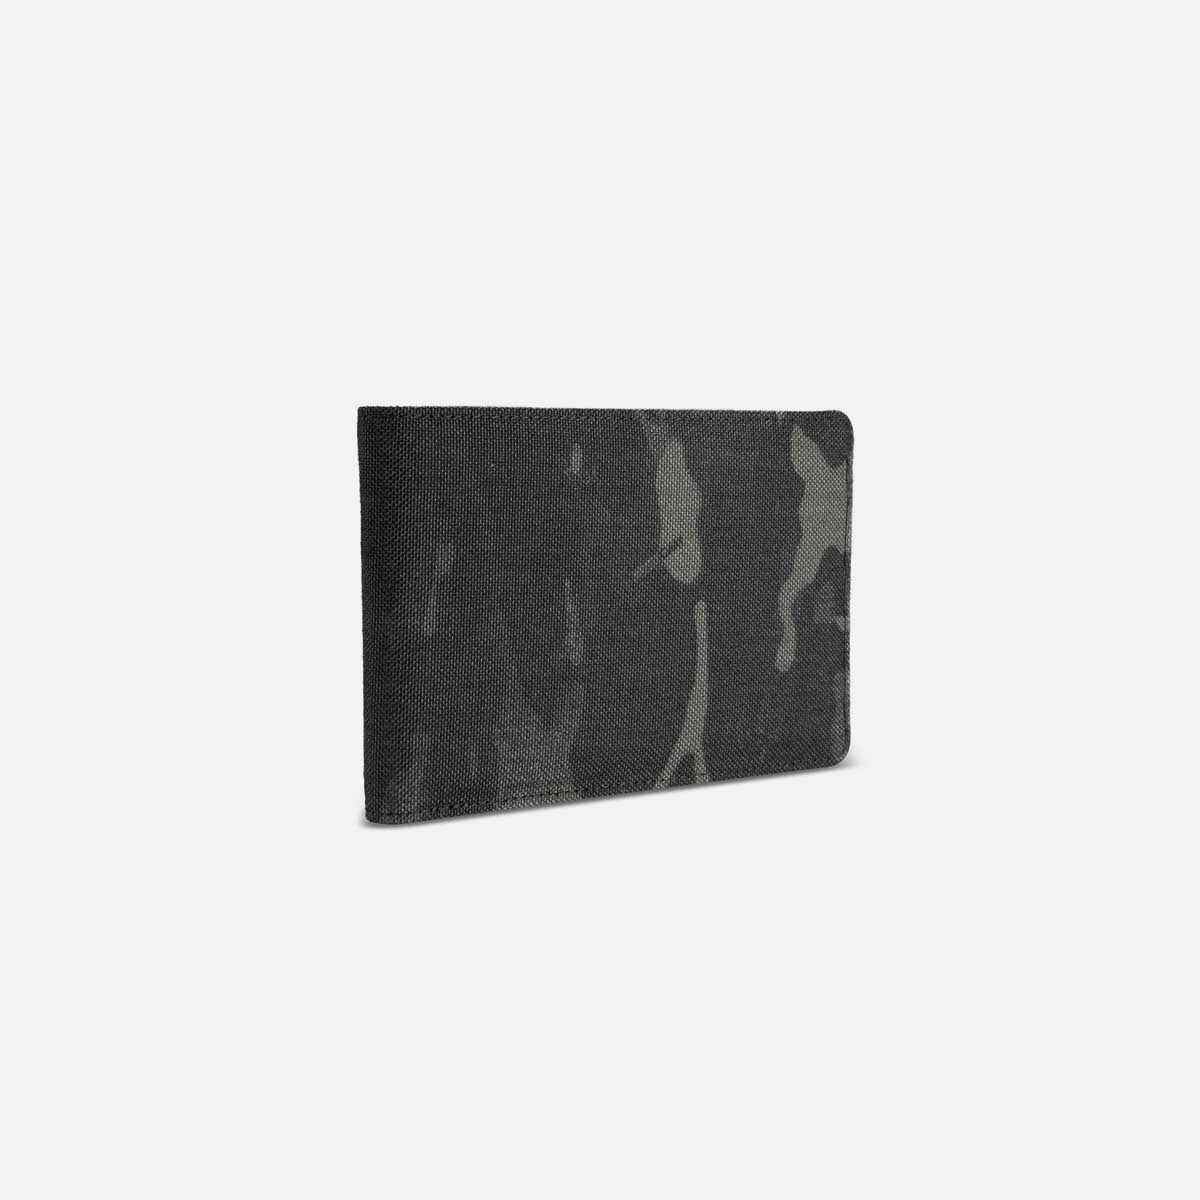 44001_travelwallet_blackcamo_hero.jpg